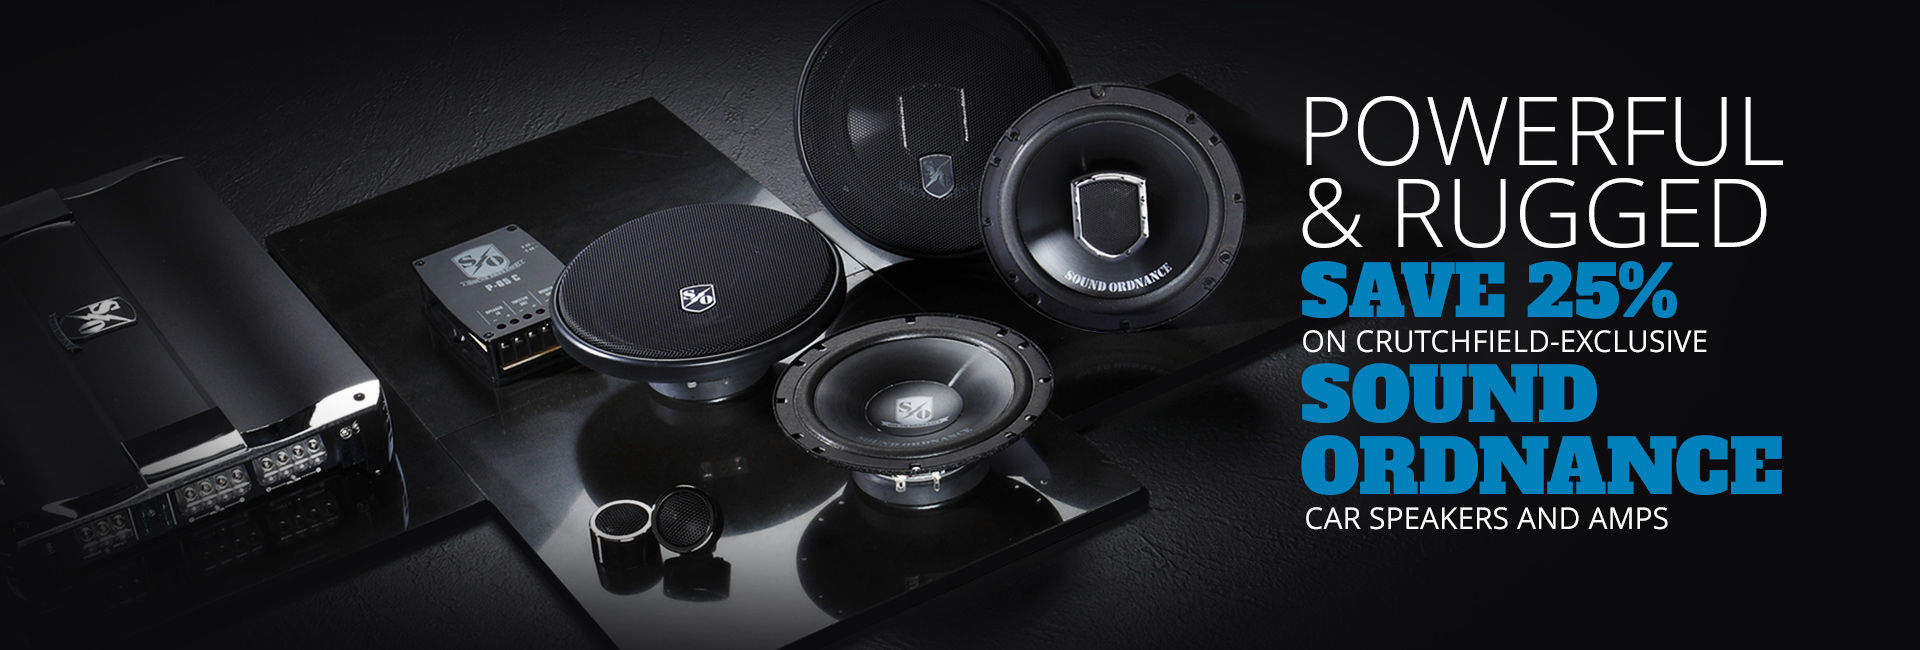 Save 25% on all Sound Ordnance Car Speakers and amplifiers